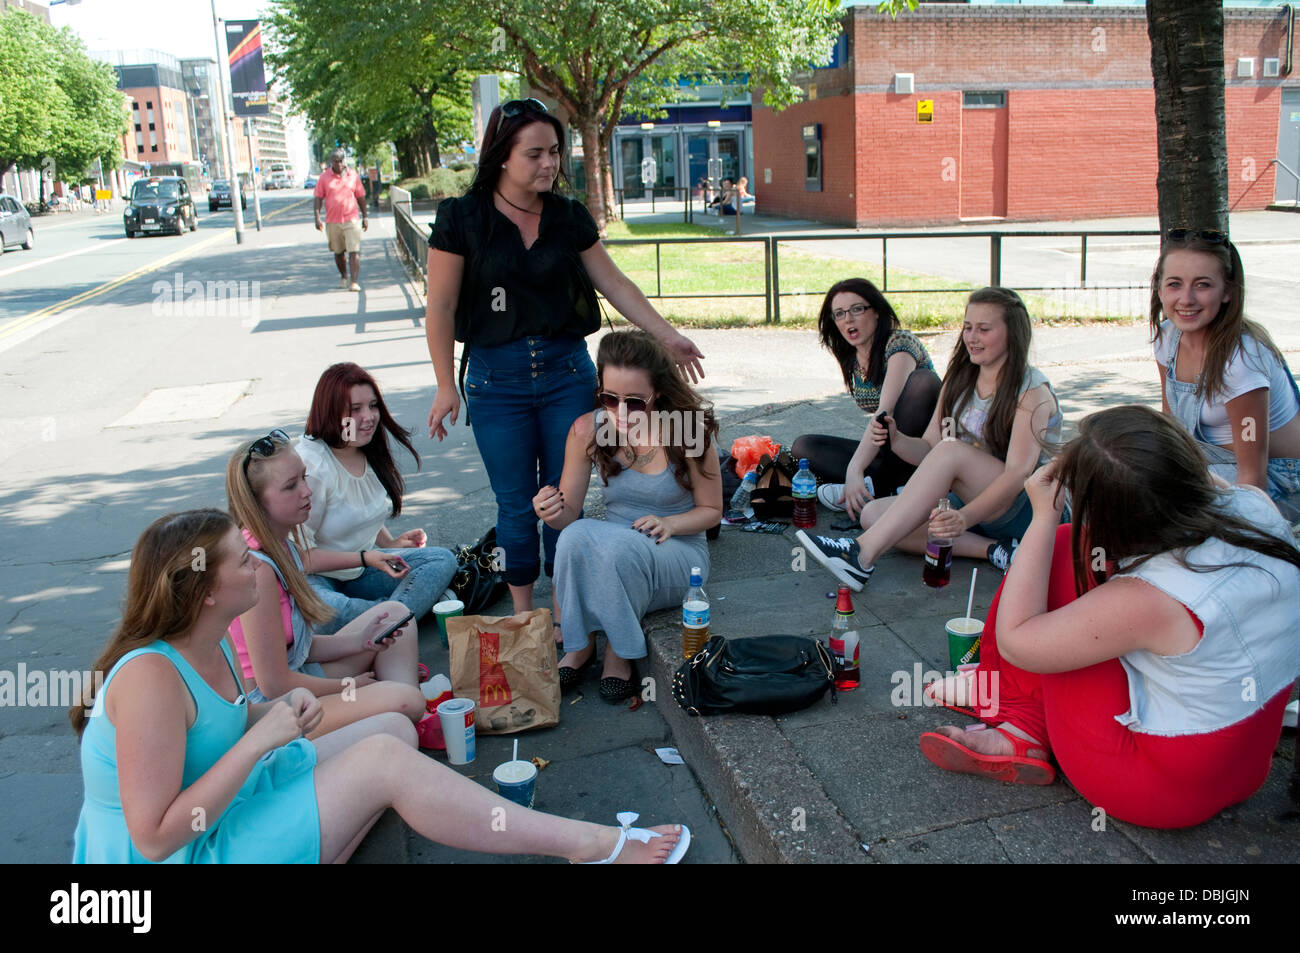 Group of female students, Oxford Road, Manchester, UK - Stock Image